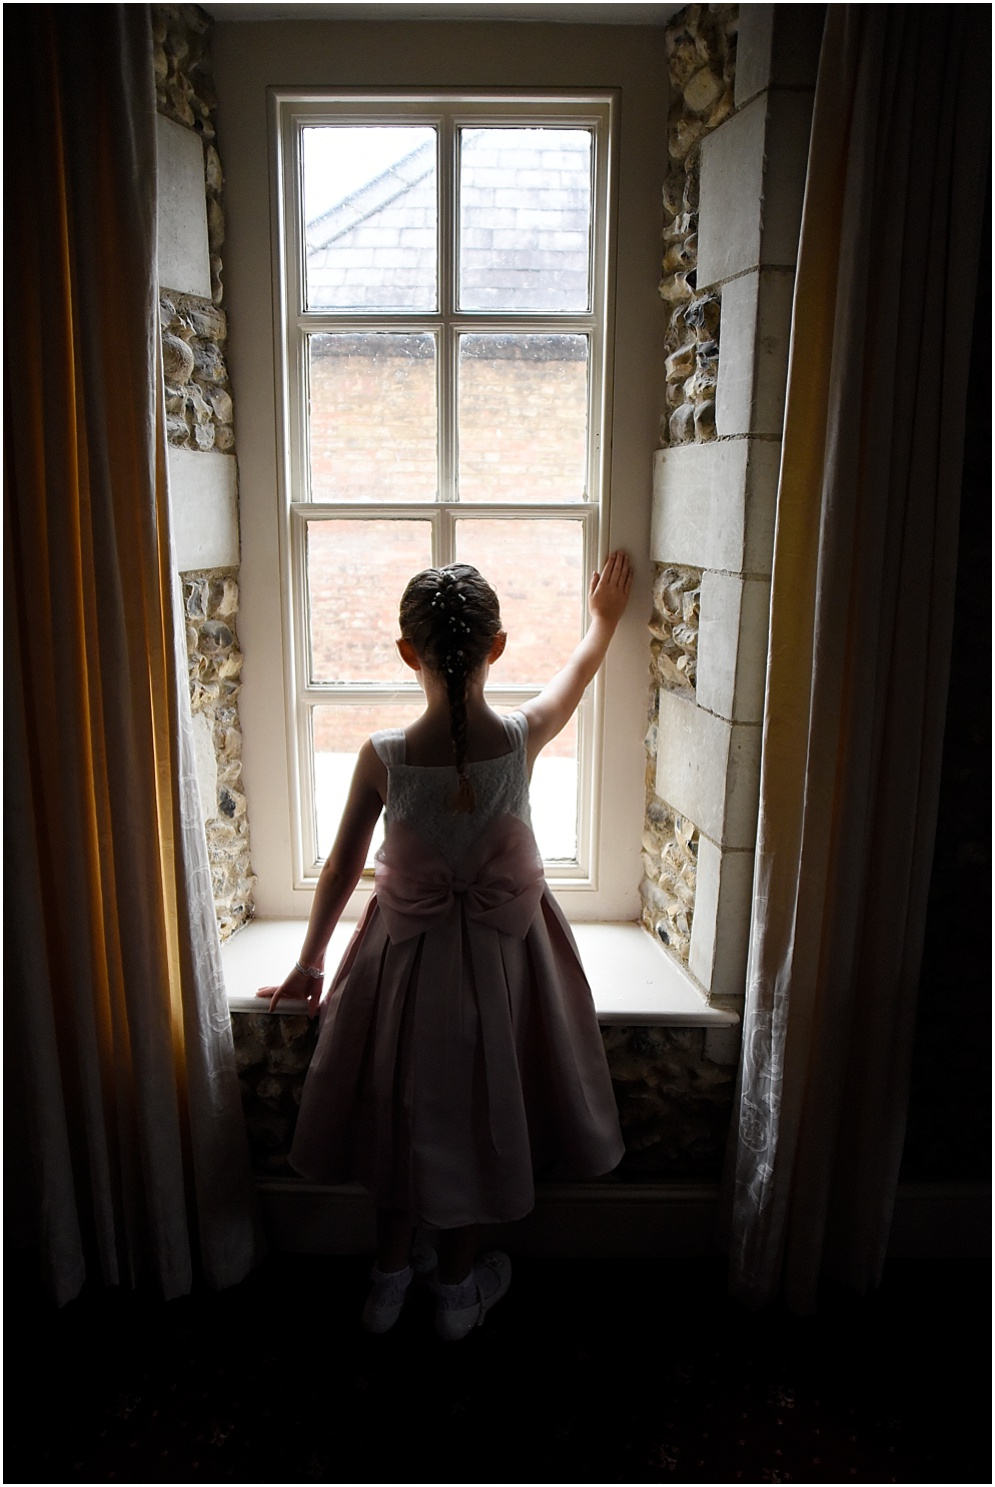 Flower girl looks out of the window.